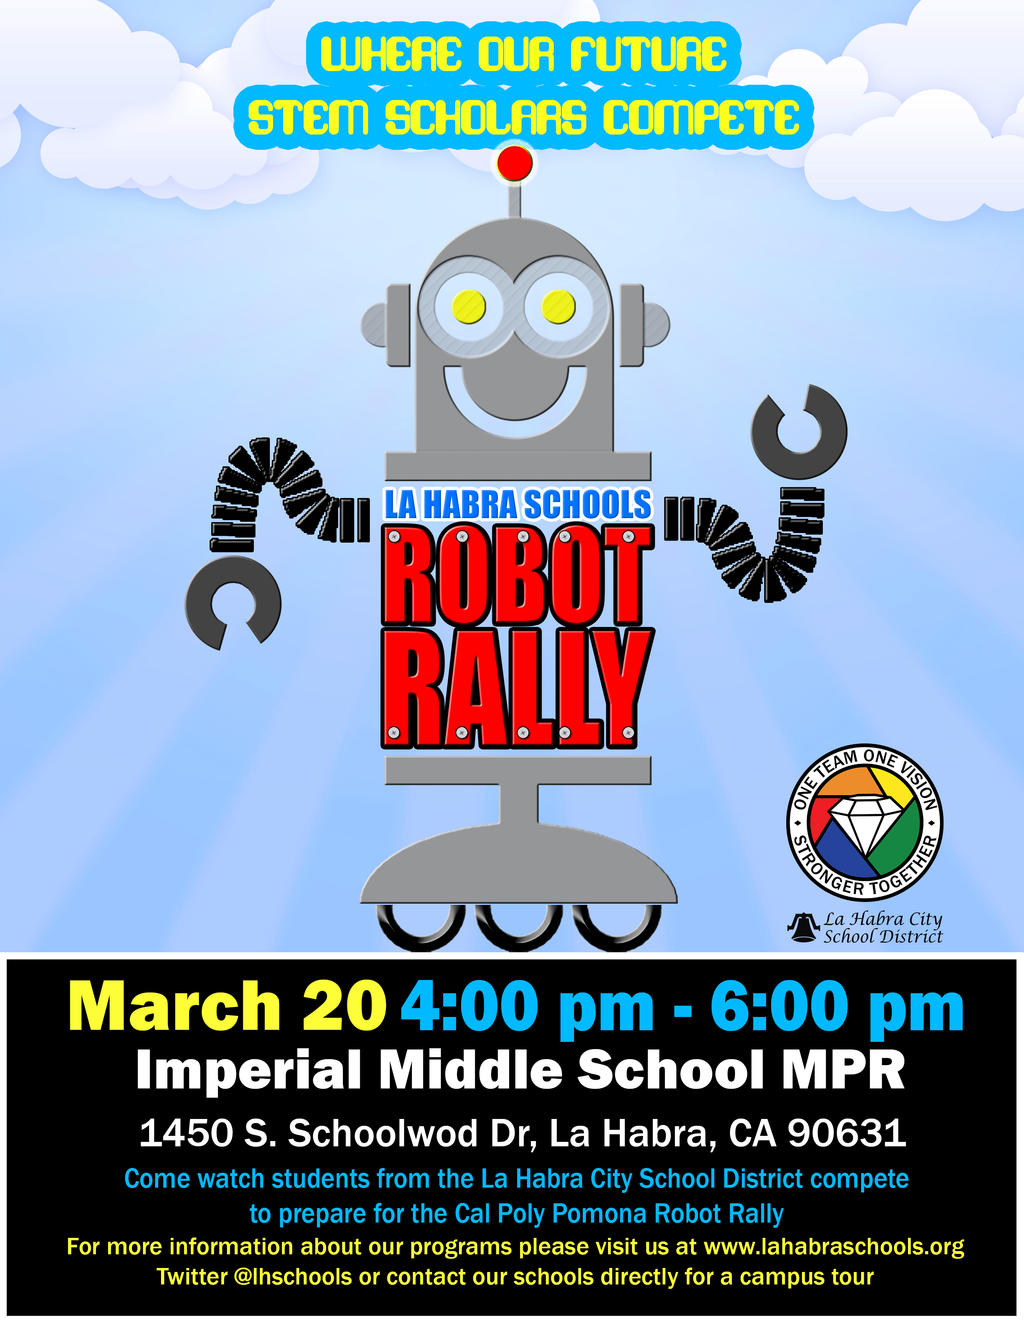 Second Annual Robot Rally - March 20 at IMS | La Habra City